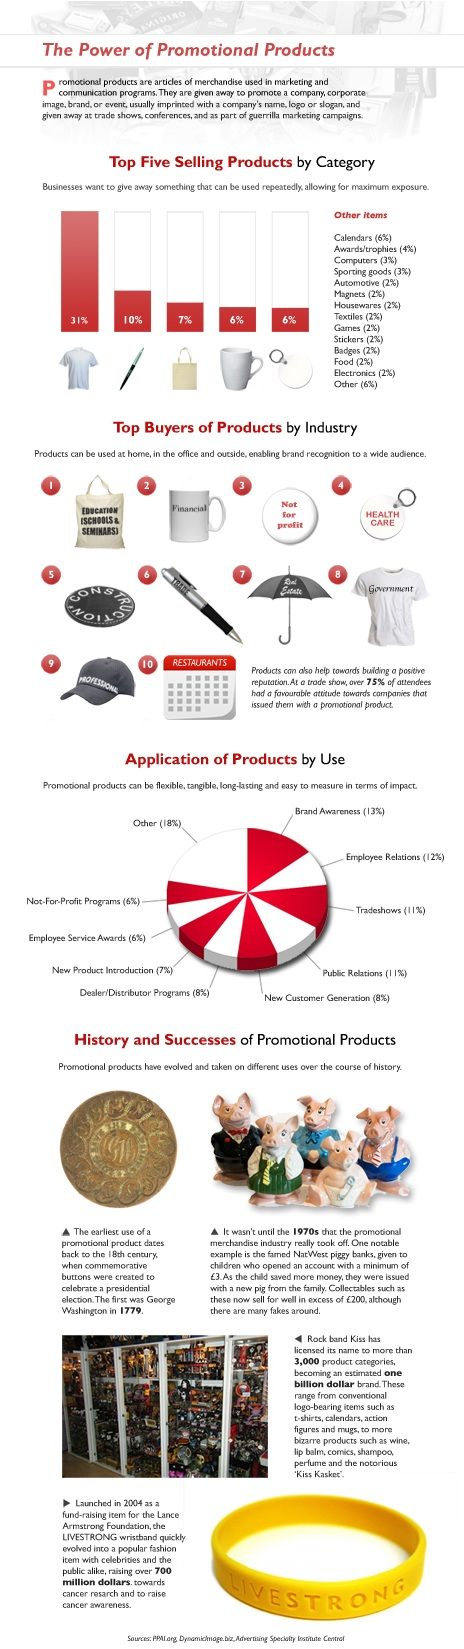 The-Power-of-Promotional-Products-Infographic